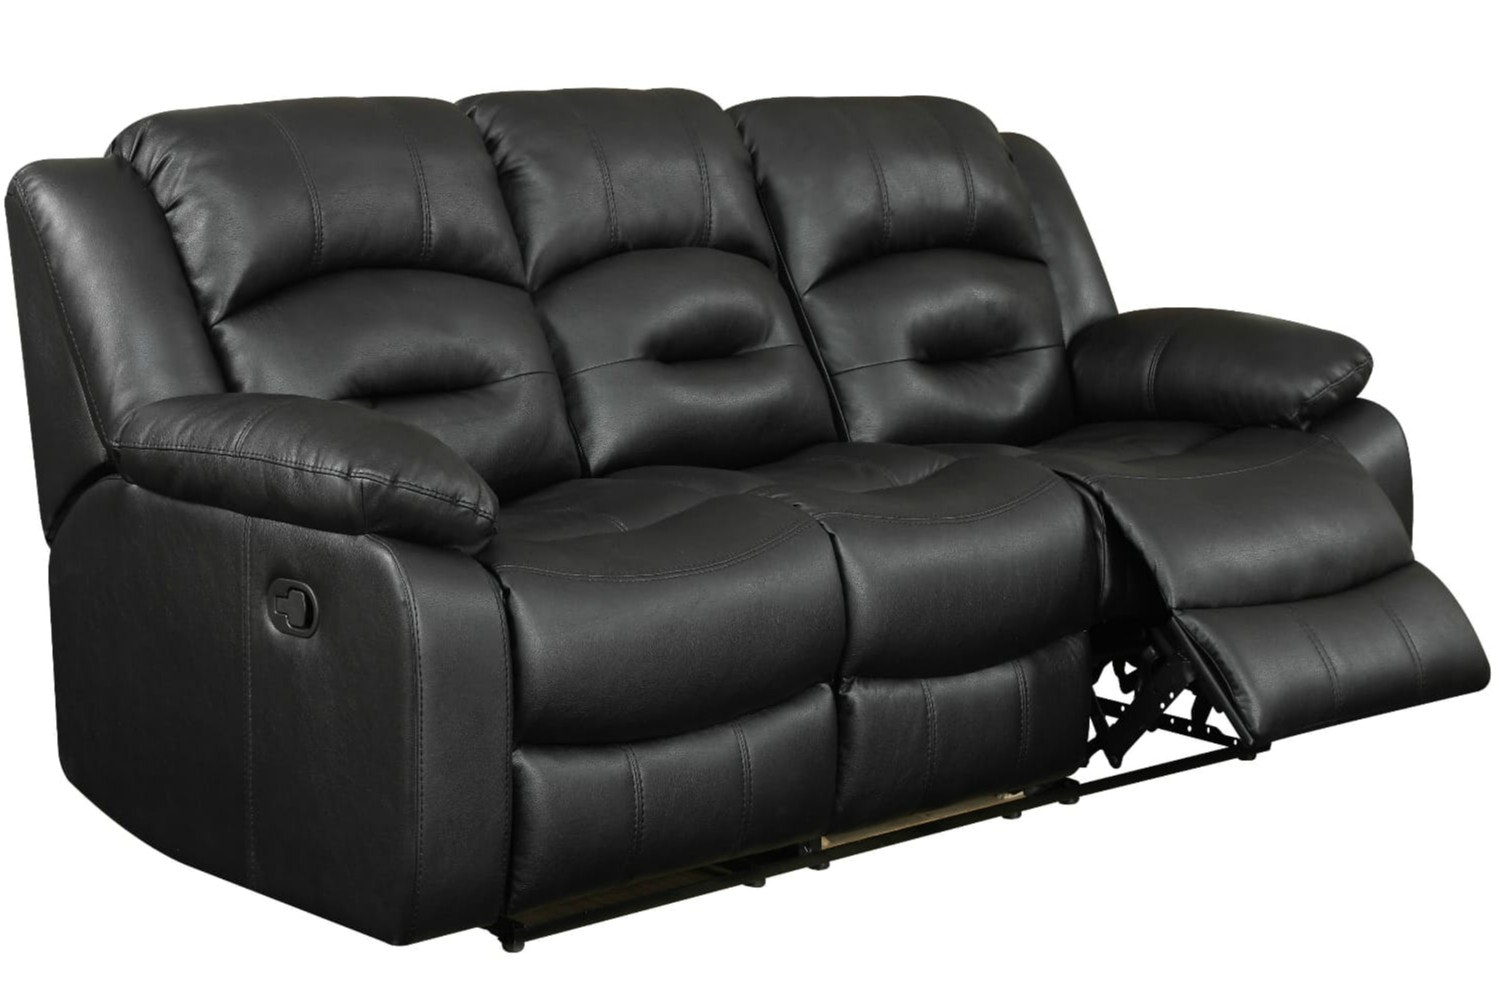 Captivating Hunter 3 Seater Recliner Sofa | Black